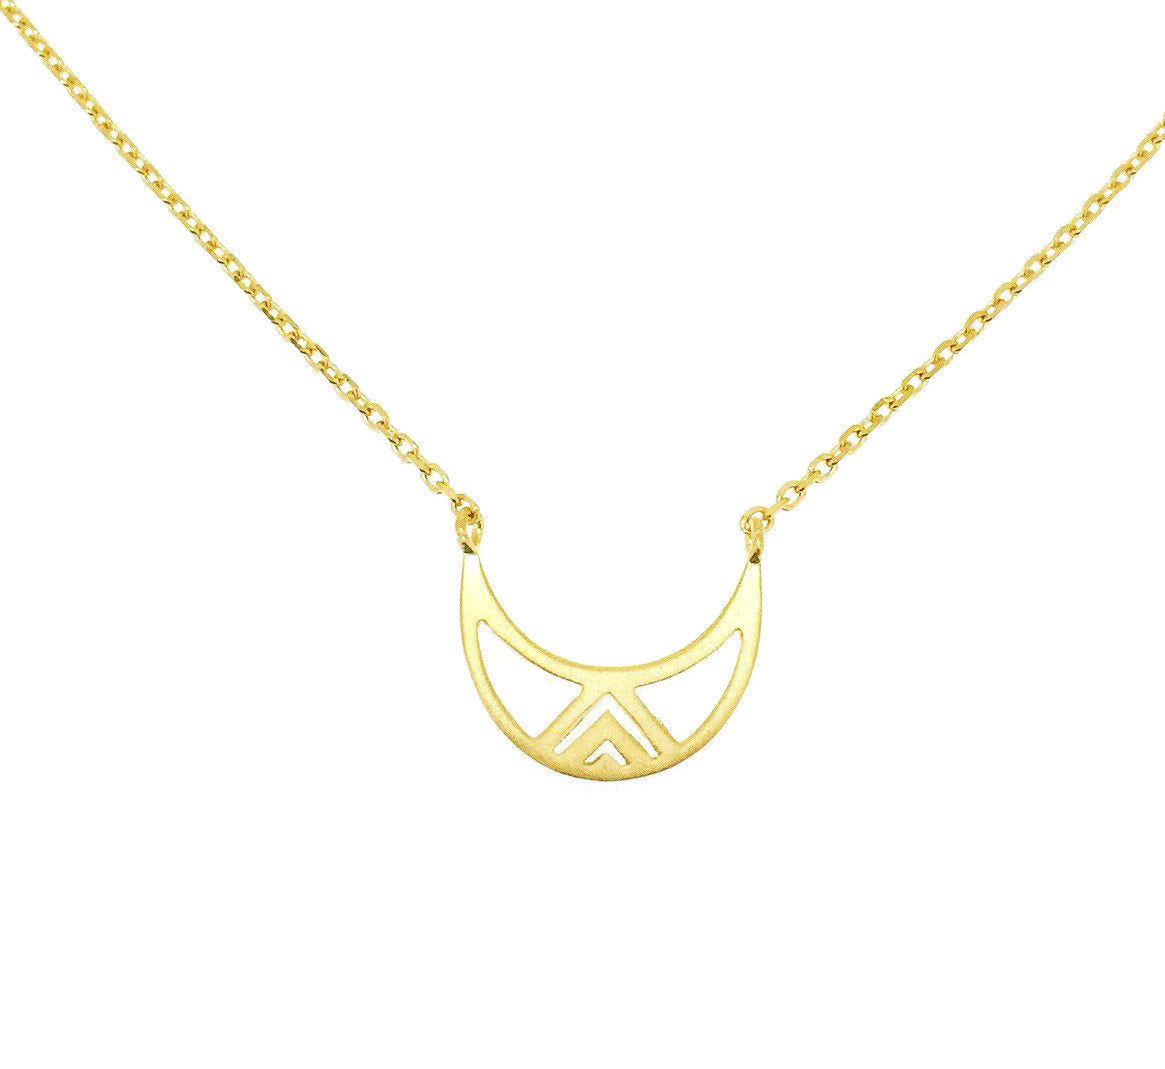 moon mini female image vermeil necklaces gold influence muru crescent pendant necklace